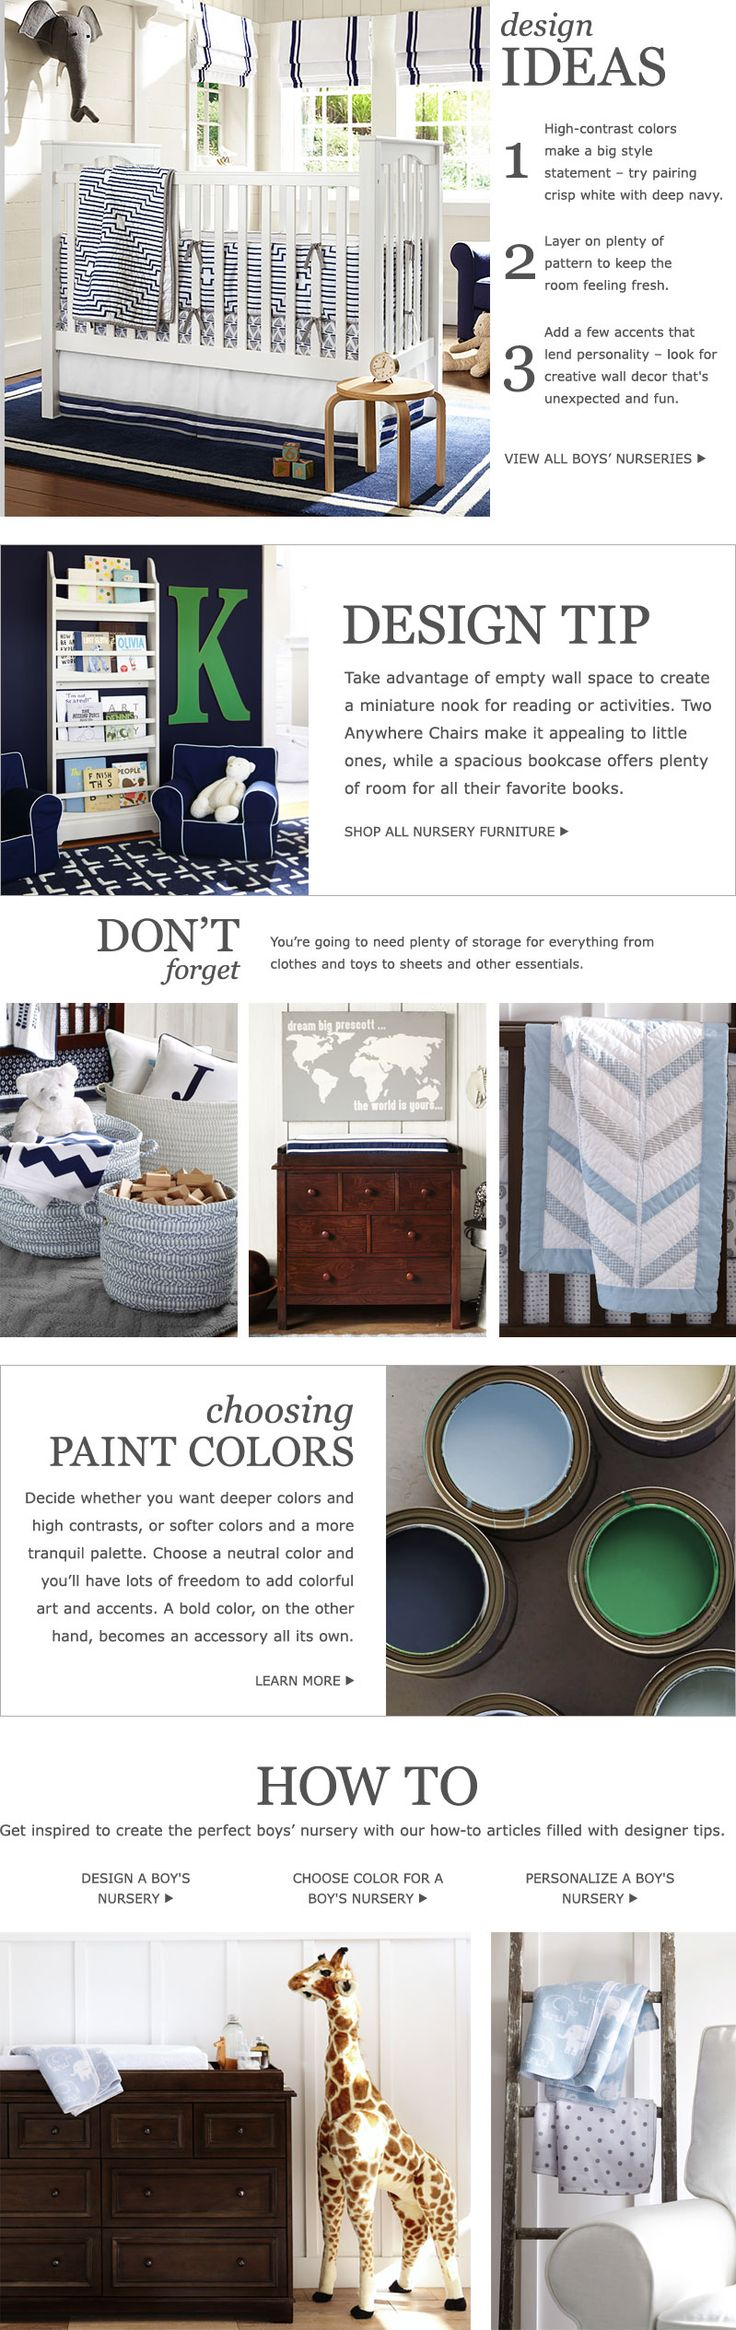 Top tips for making a baby s nursery special - Baby Boy Nursery Ideas Nursery Ideas For Boys Pottery Barn Kids